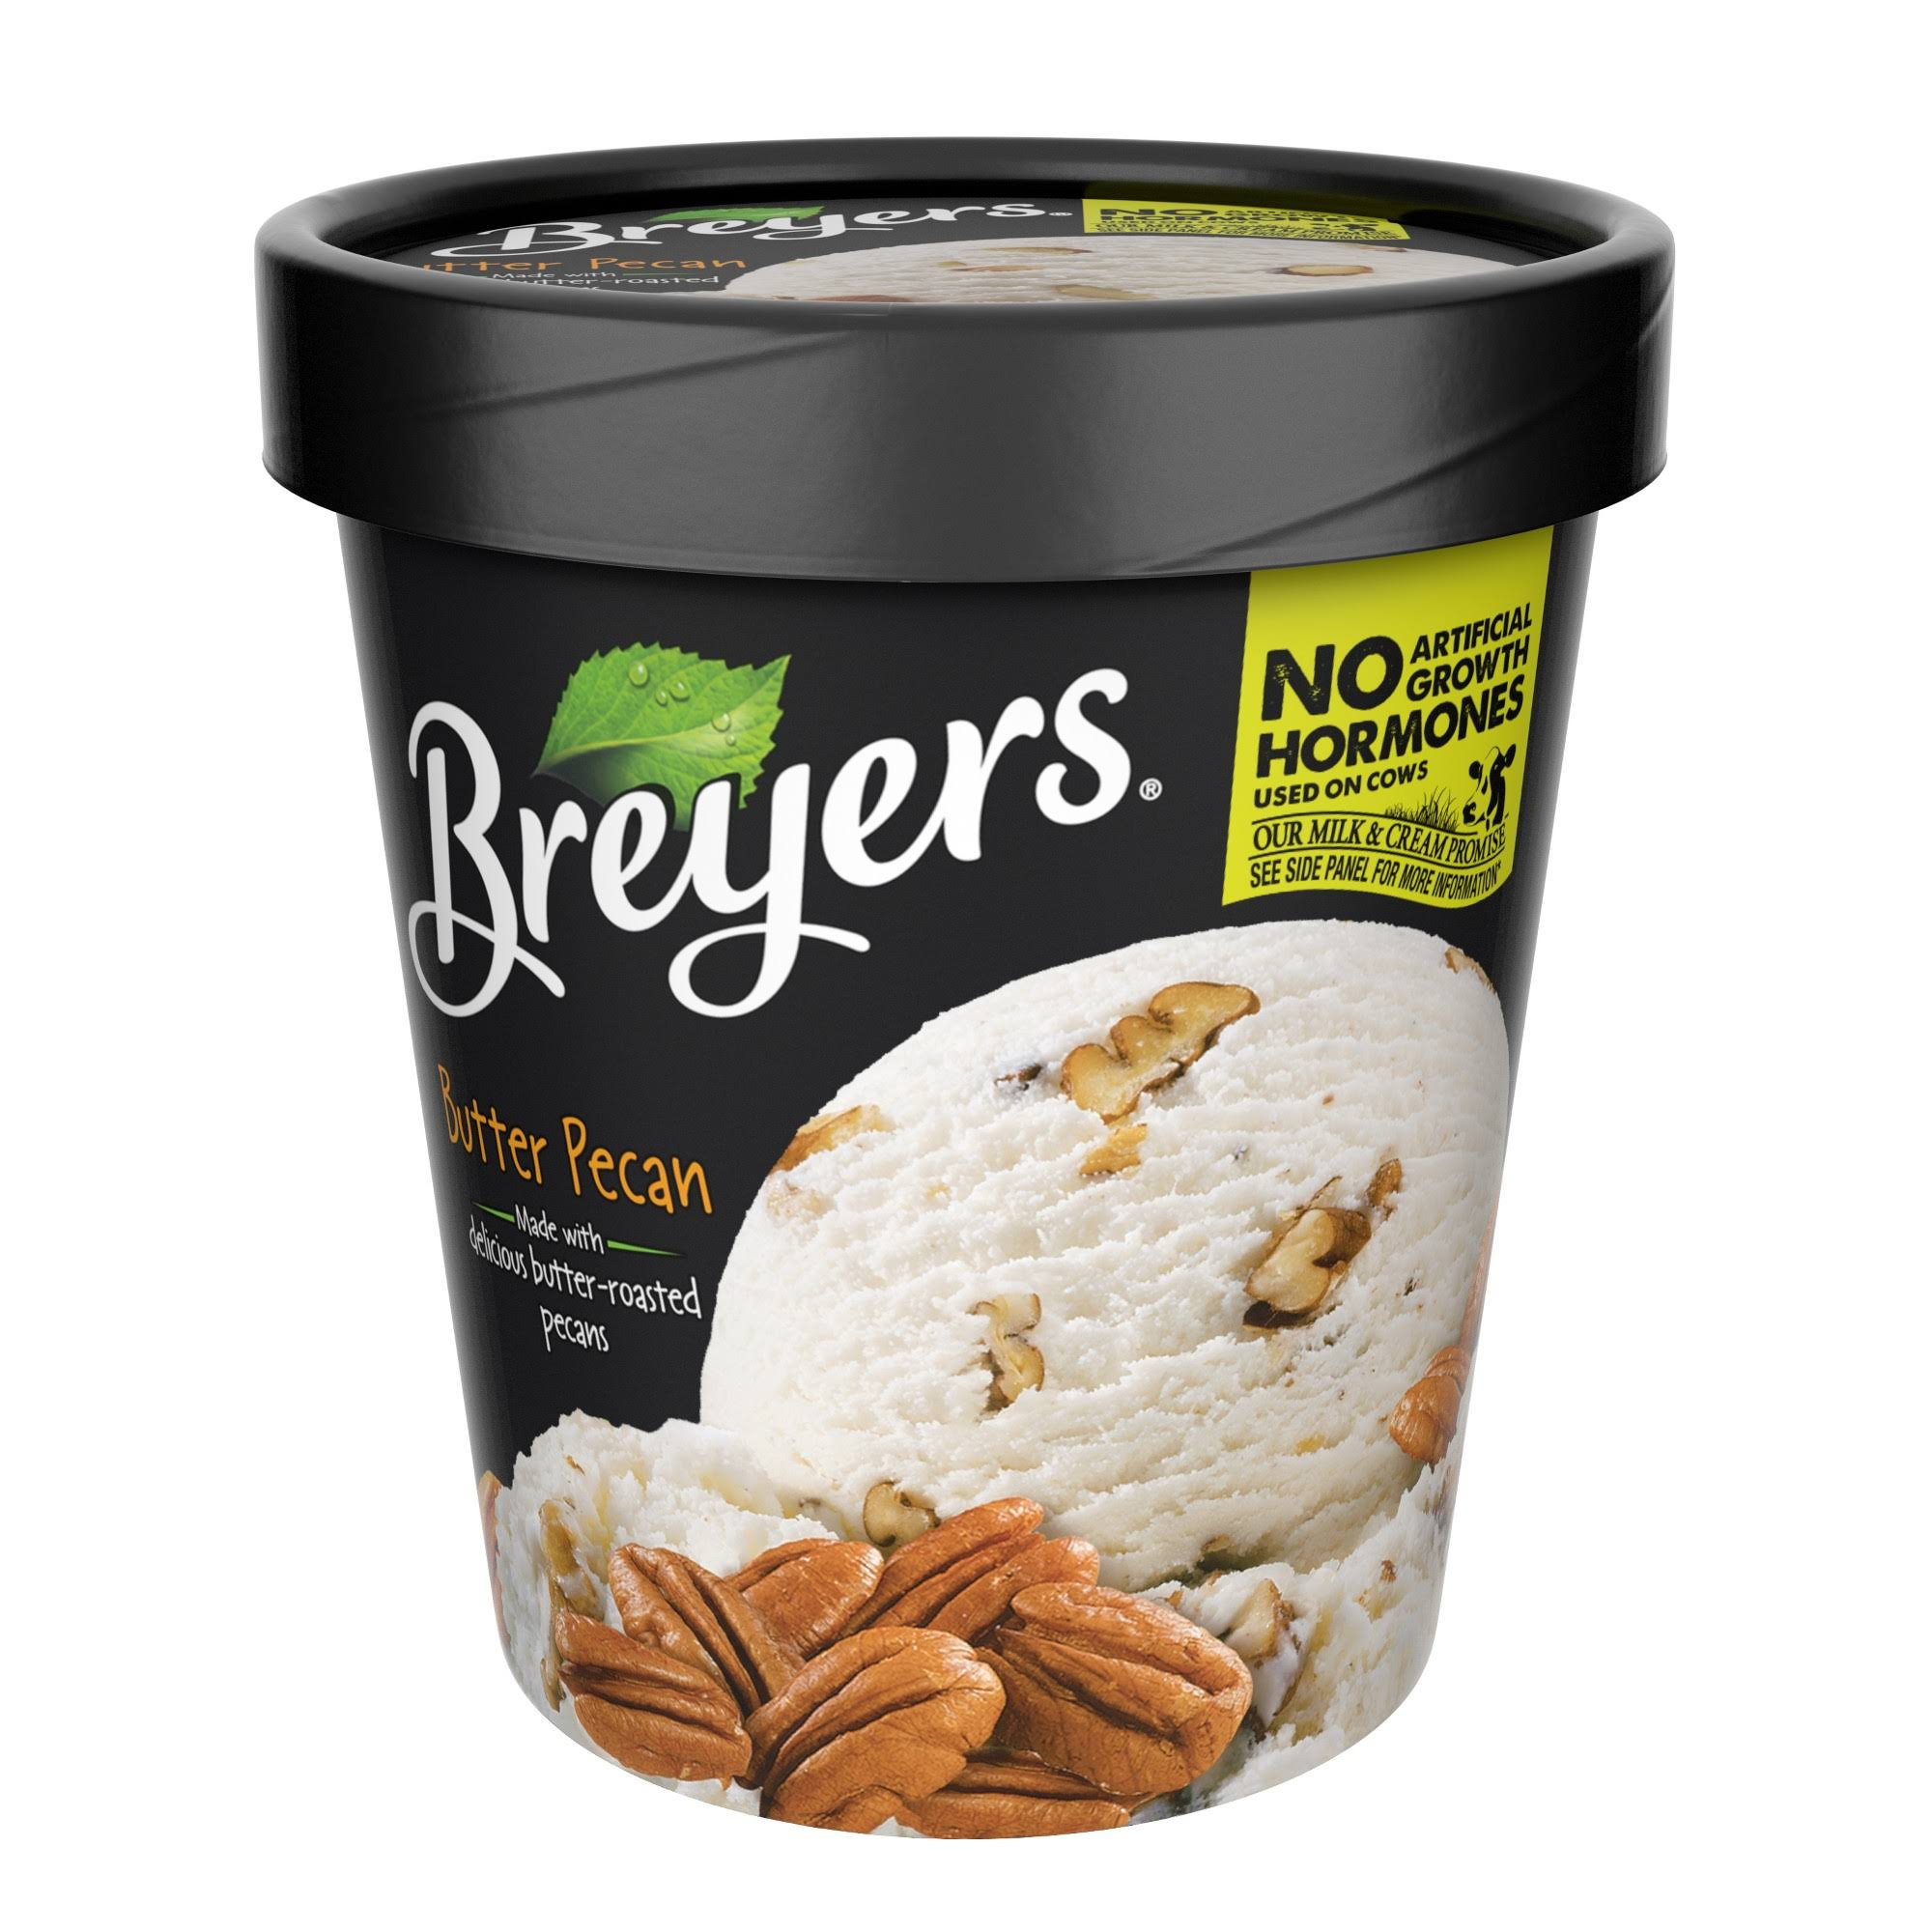 Breyers Ice Cream - Butter Pecan, 1pt